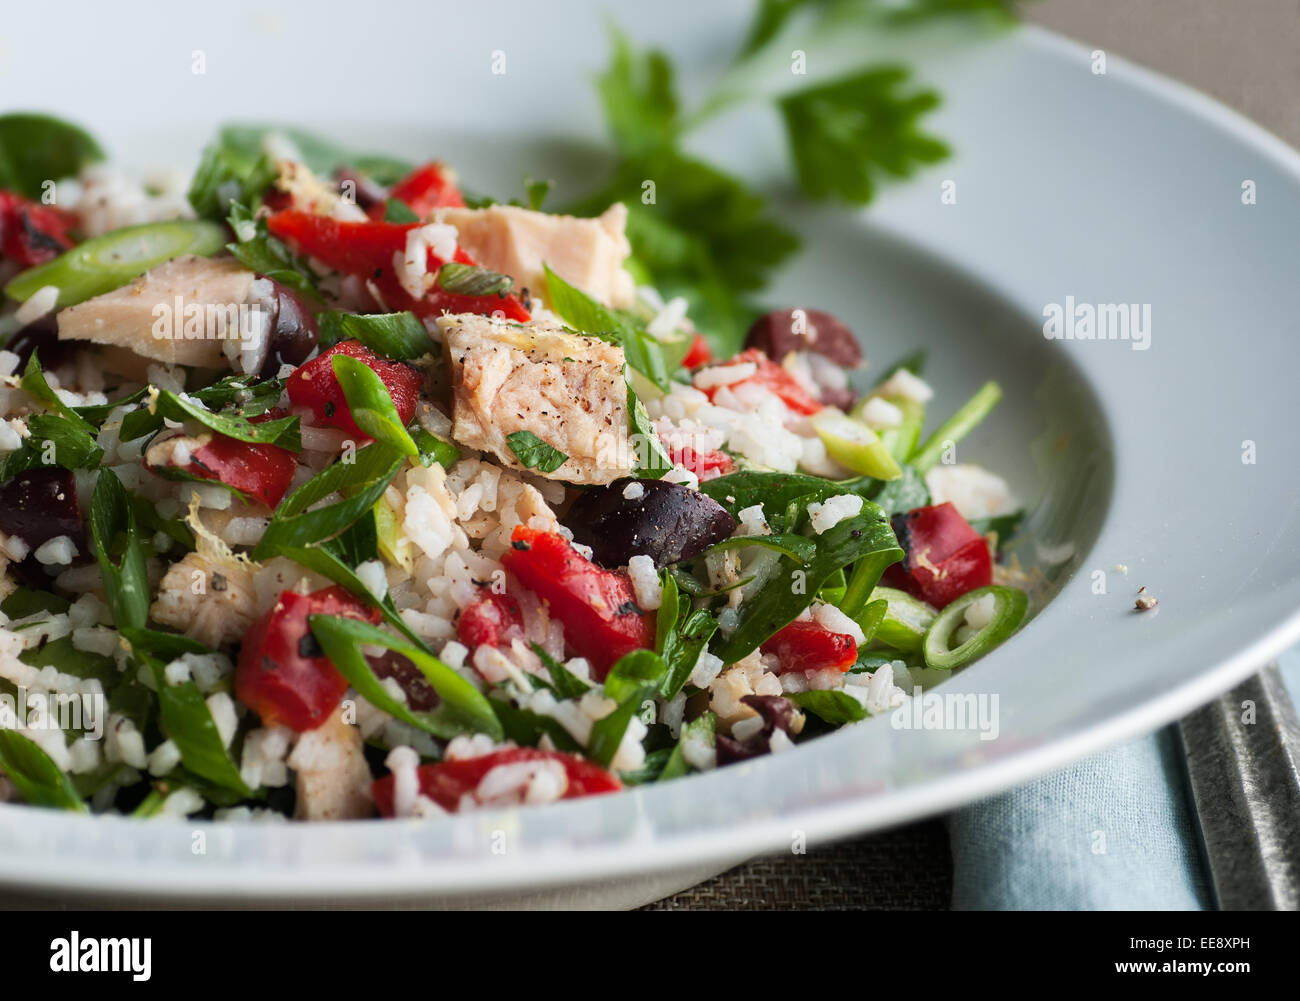 Albacore tuna salad with rice and vegetables - Stock Image